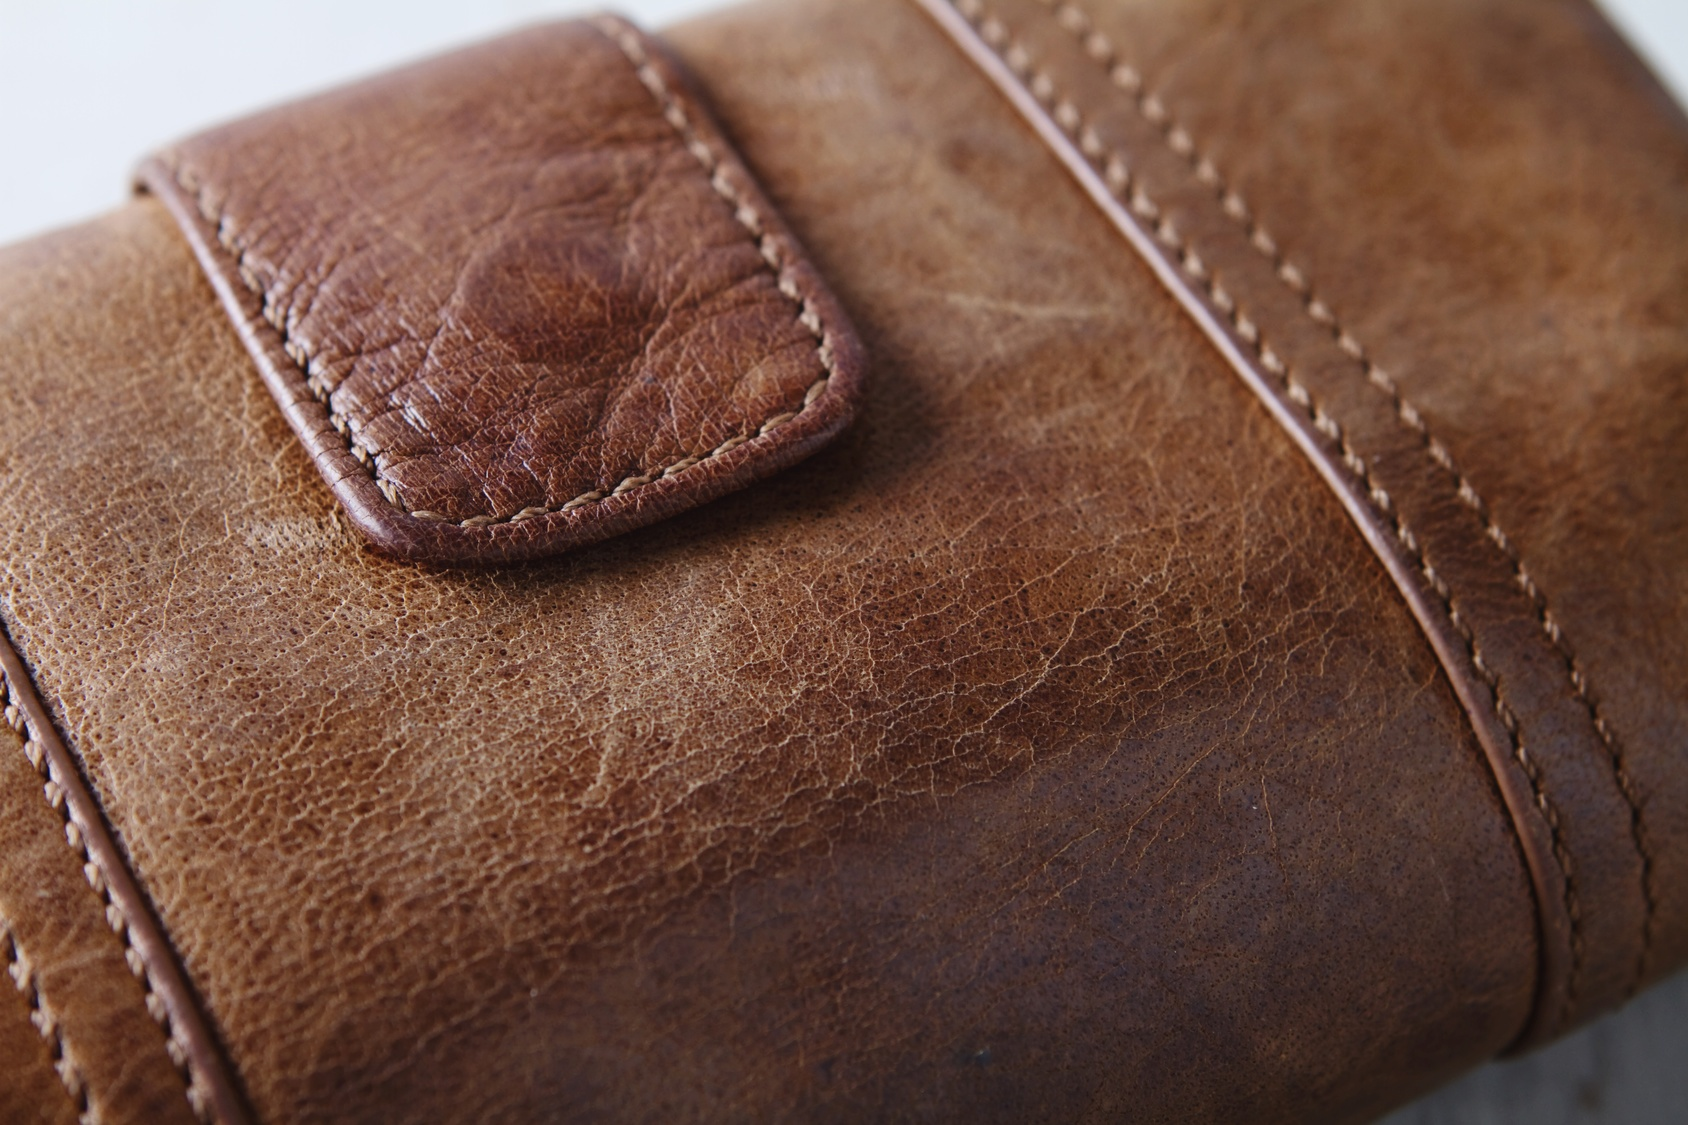 Leather wallets are one of the many items that you can learn to make at Tandy Leather's school.